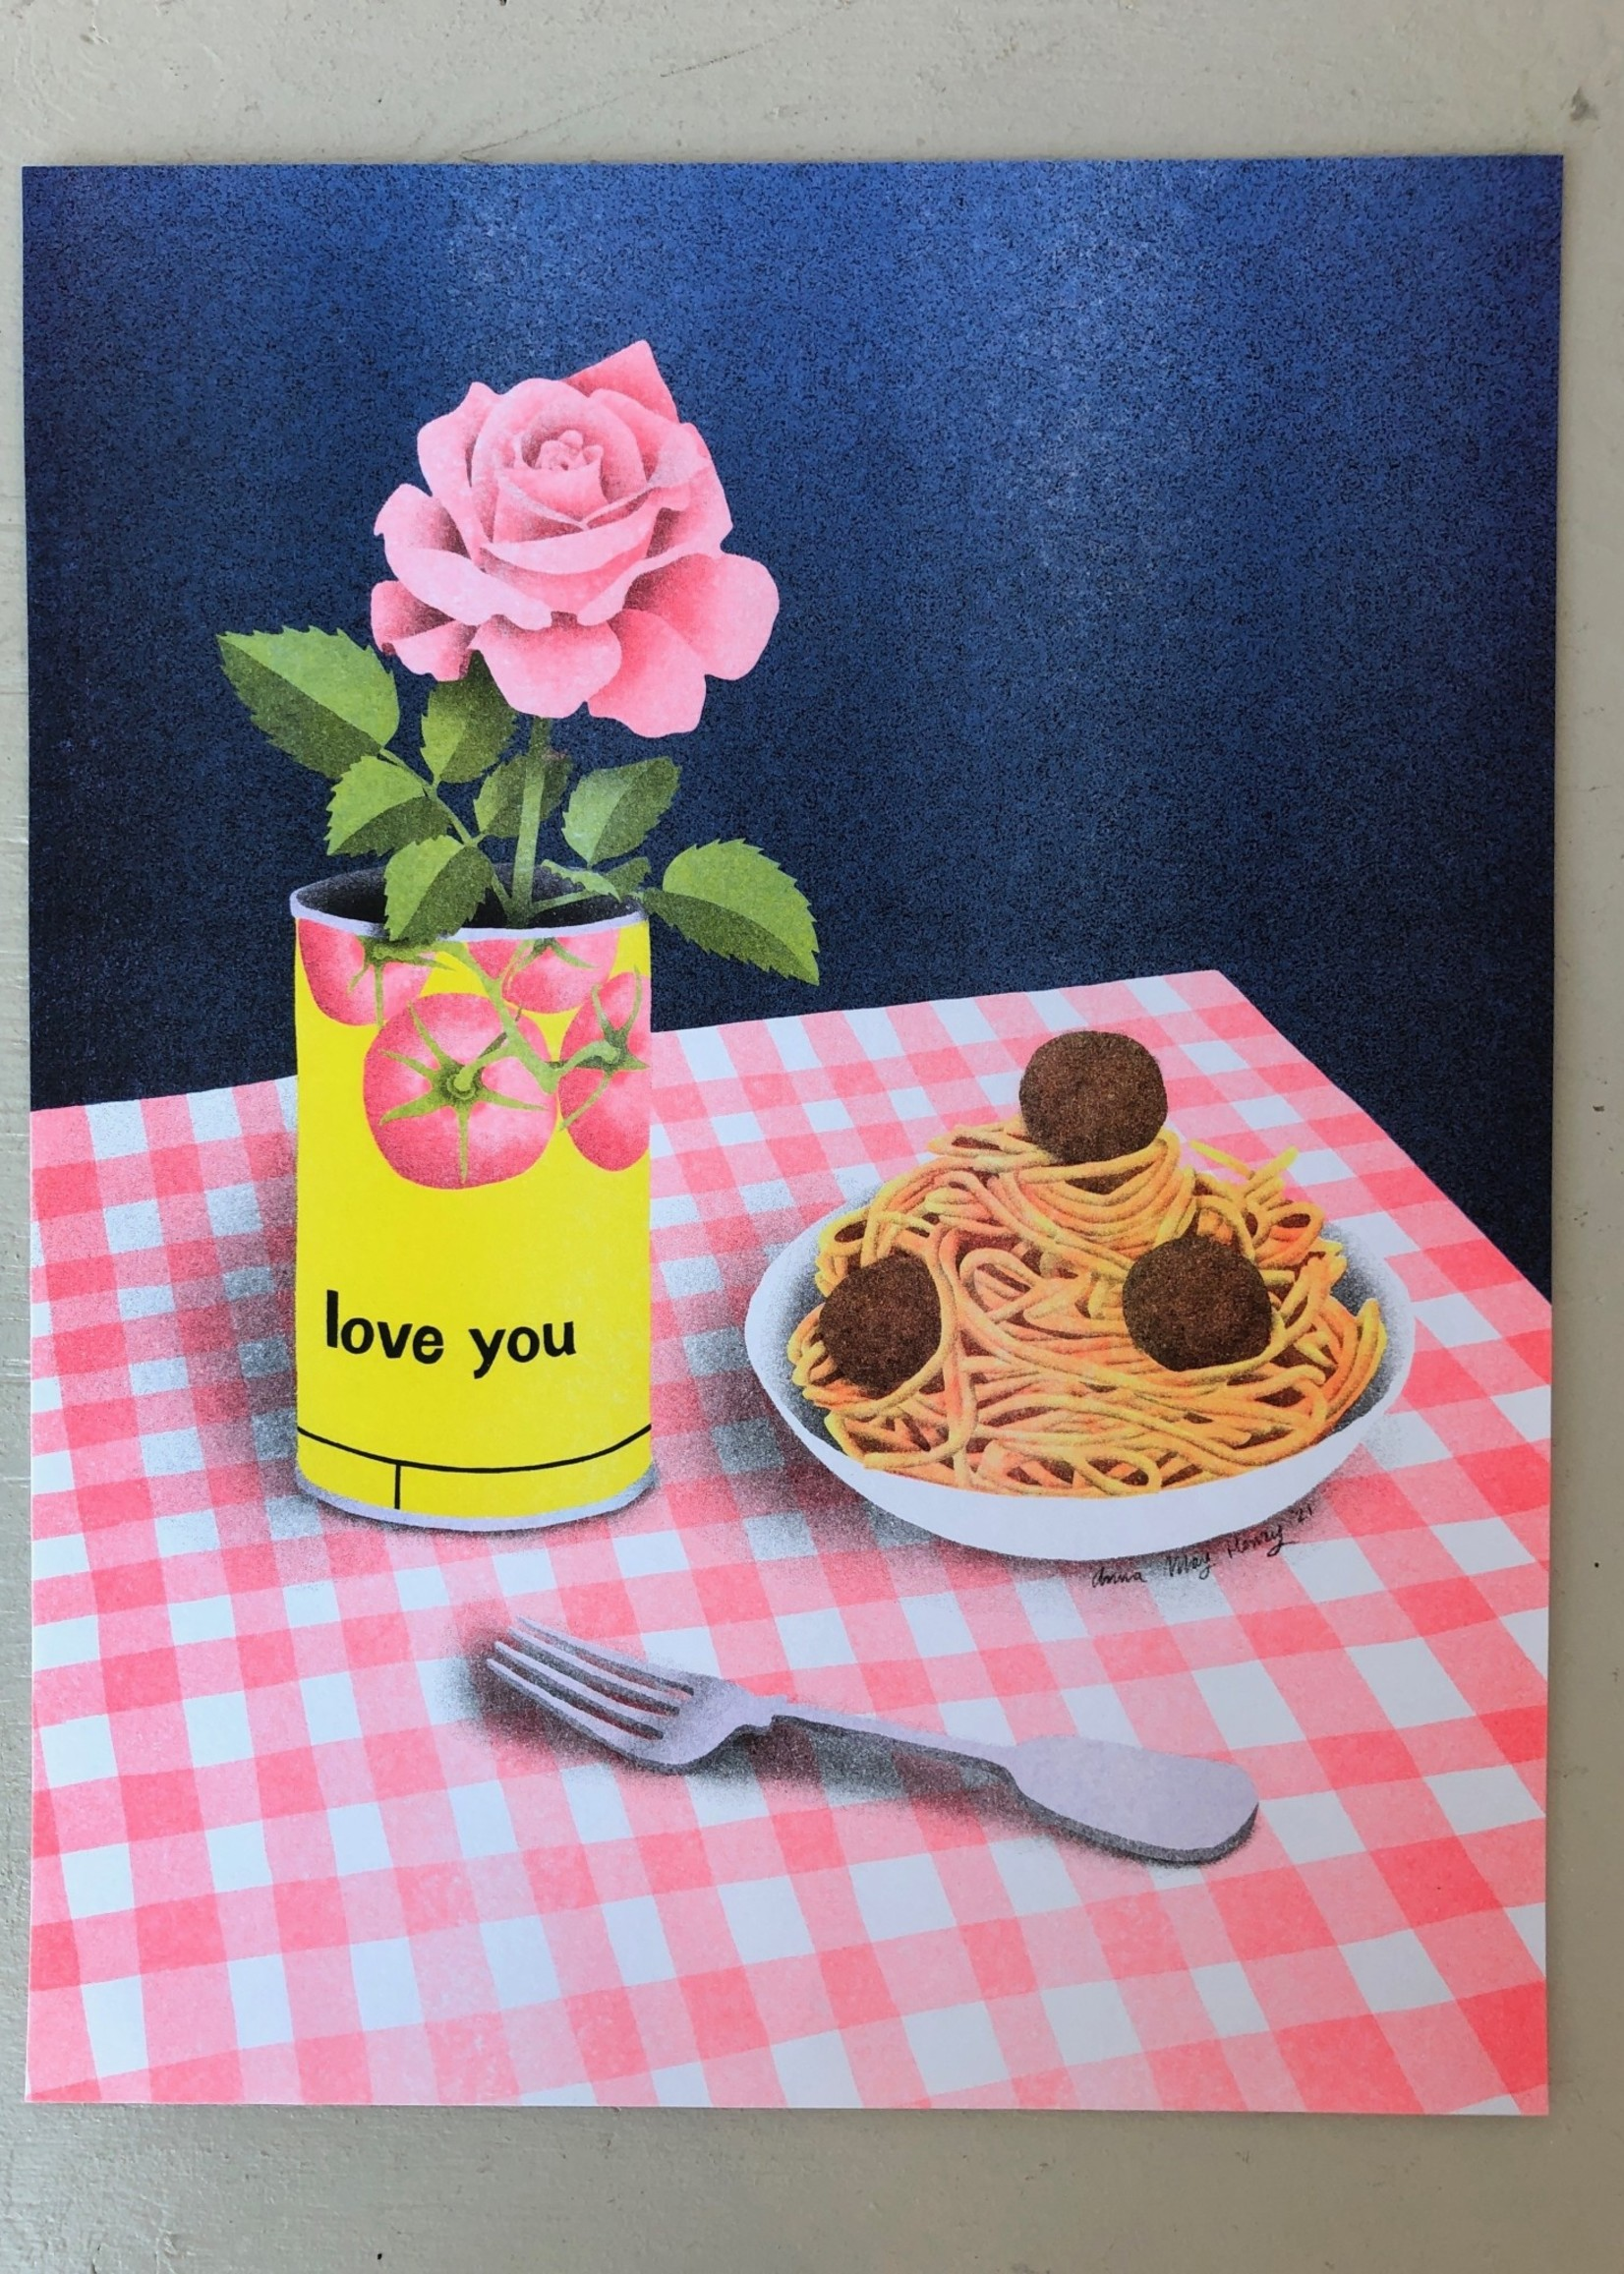 """Anna May Henry """"Love You"""" Riso Print by Anna May Henry"""